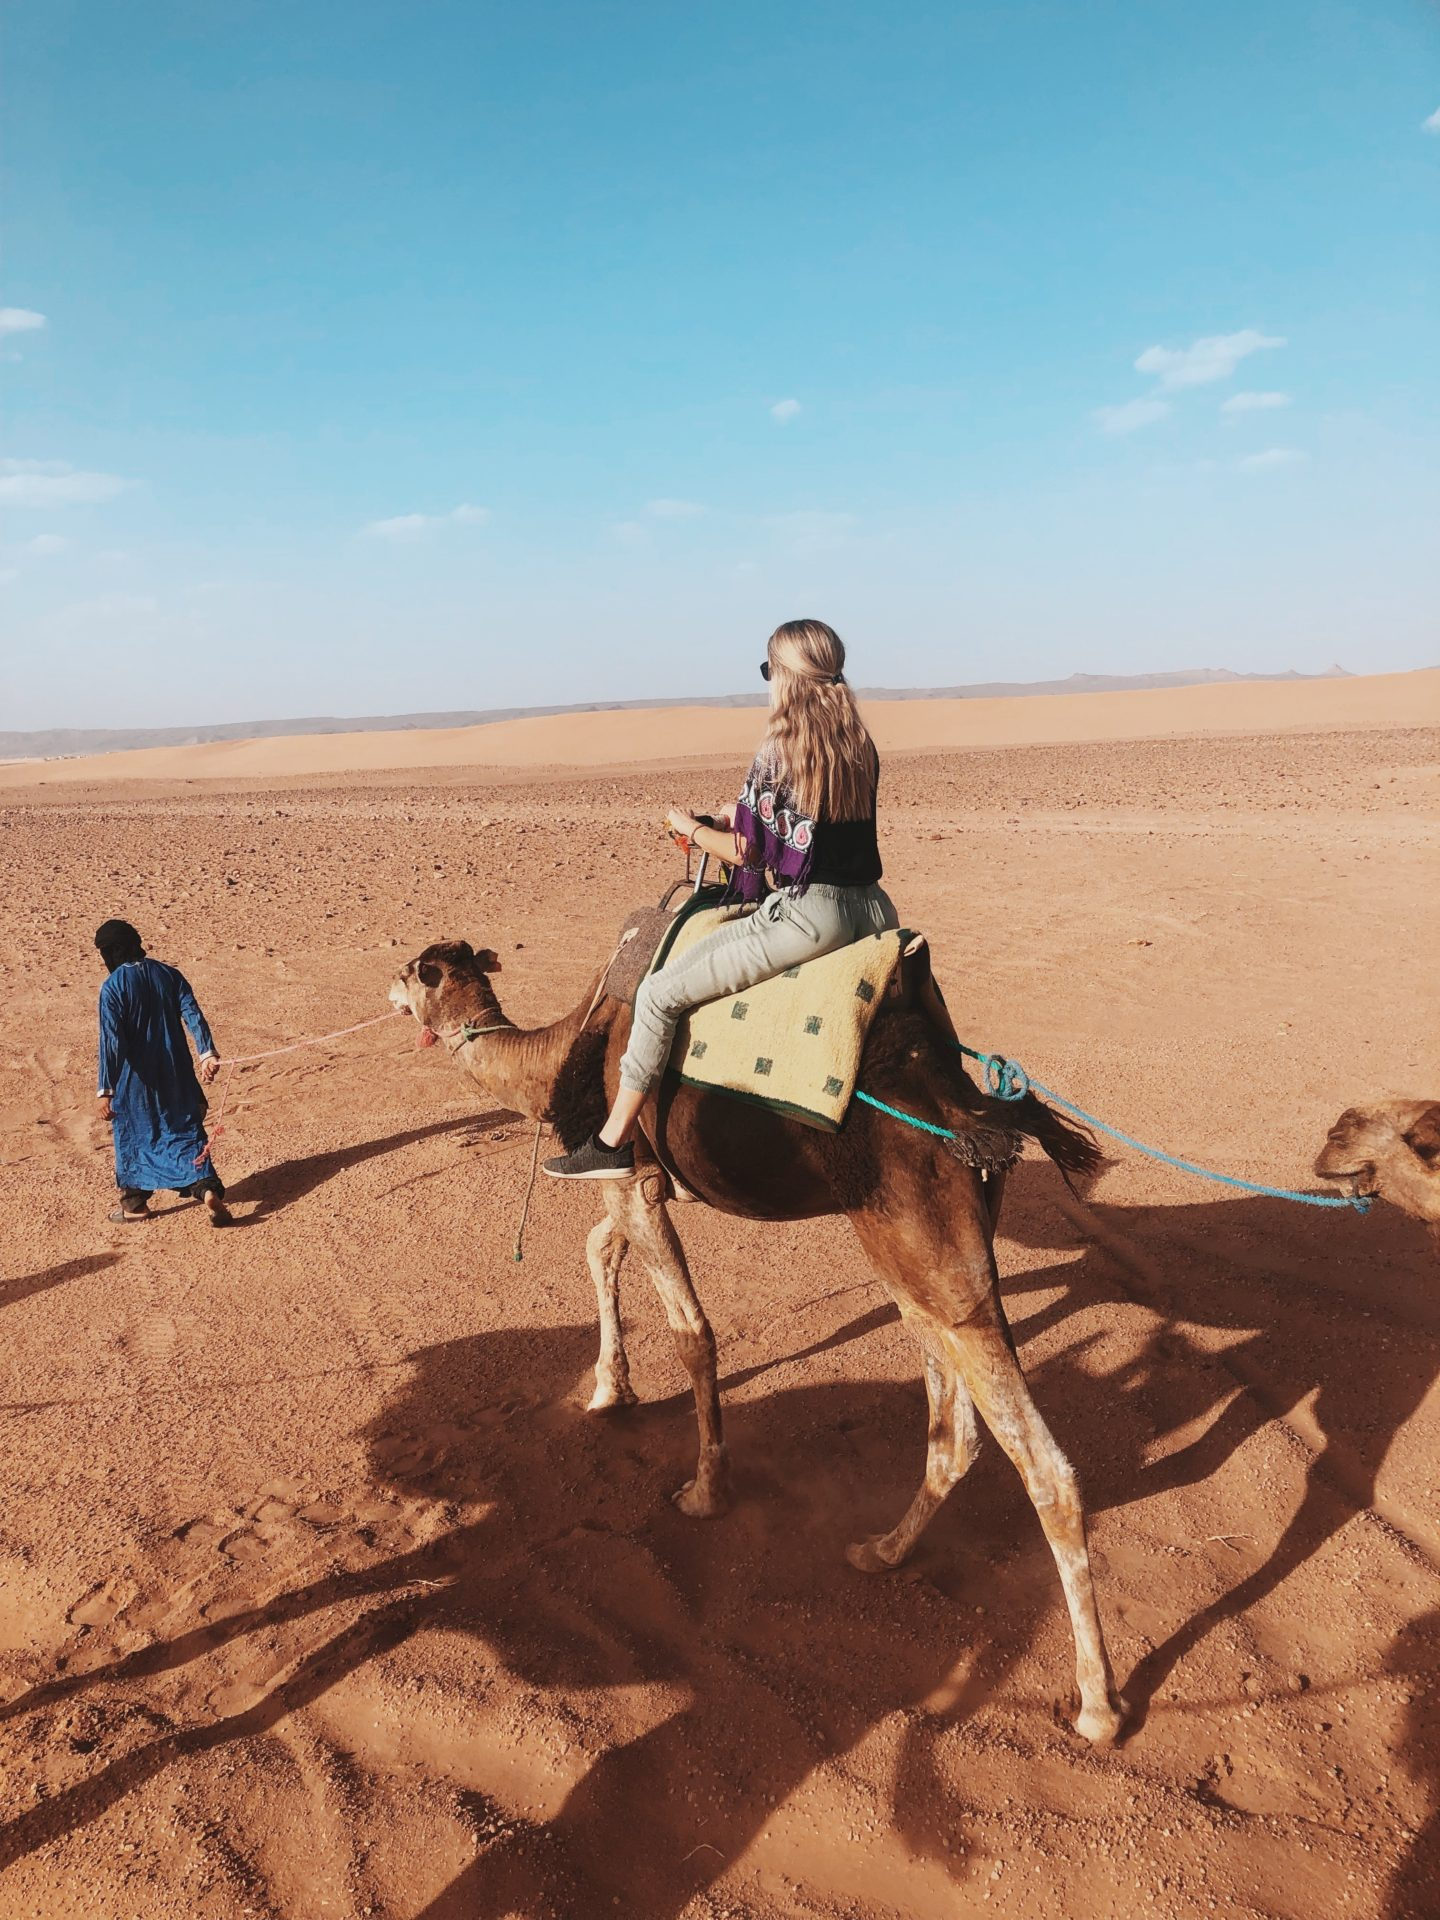 Riding a camel into the horizon of the Saharan Dessert in Morocco for a night of glamping beneath the stars.